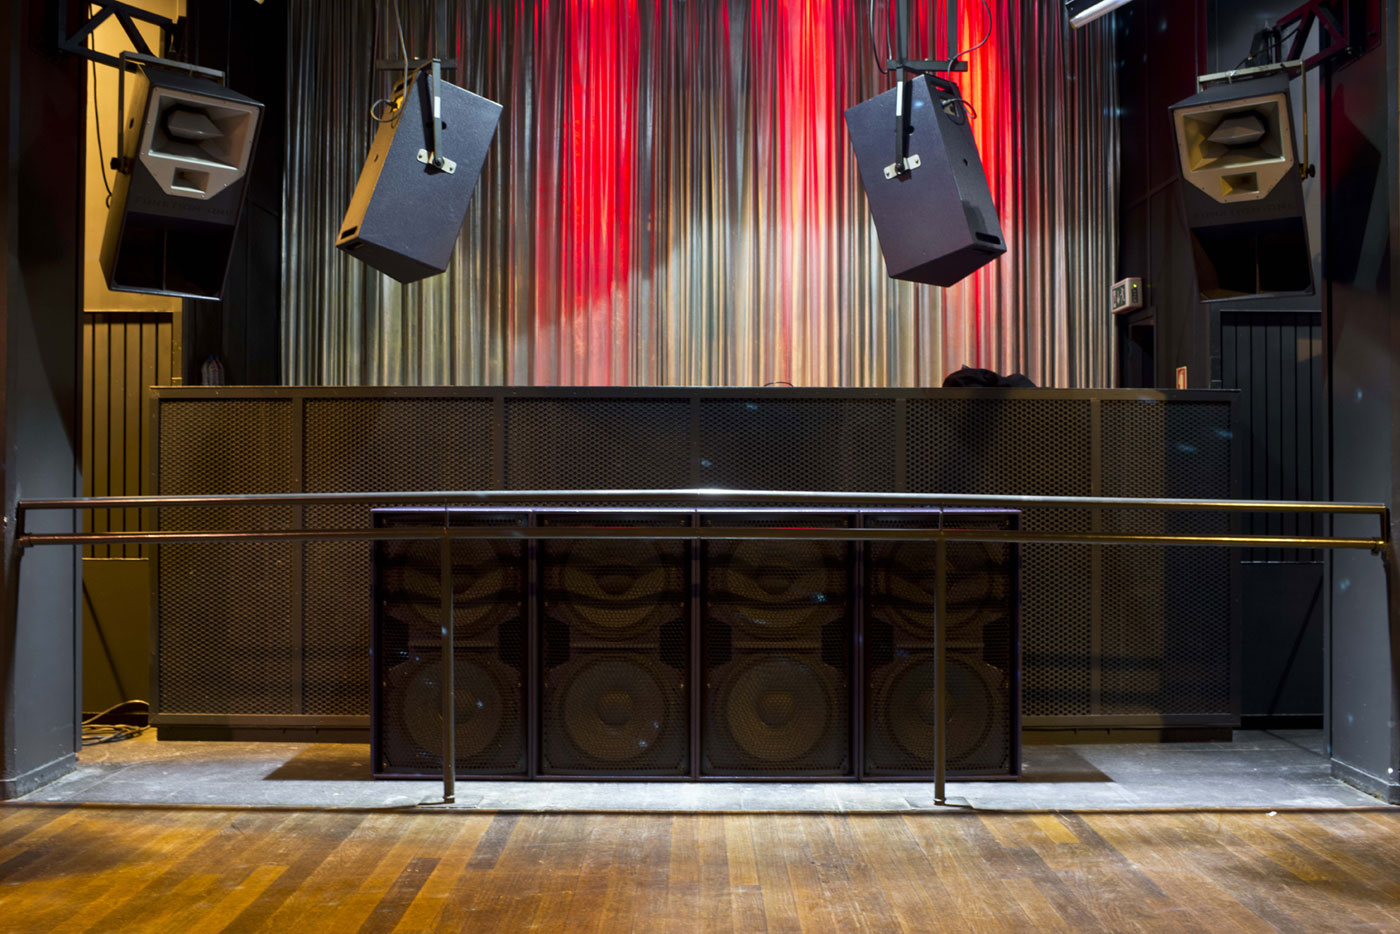 BR221 Bass and Res 2 speakers part of installation at Lux Club - Portugal